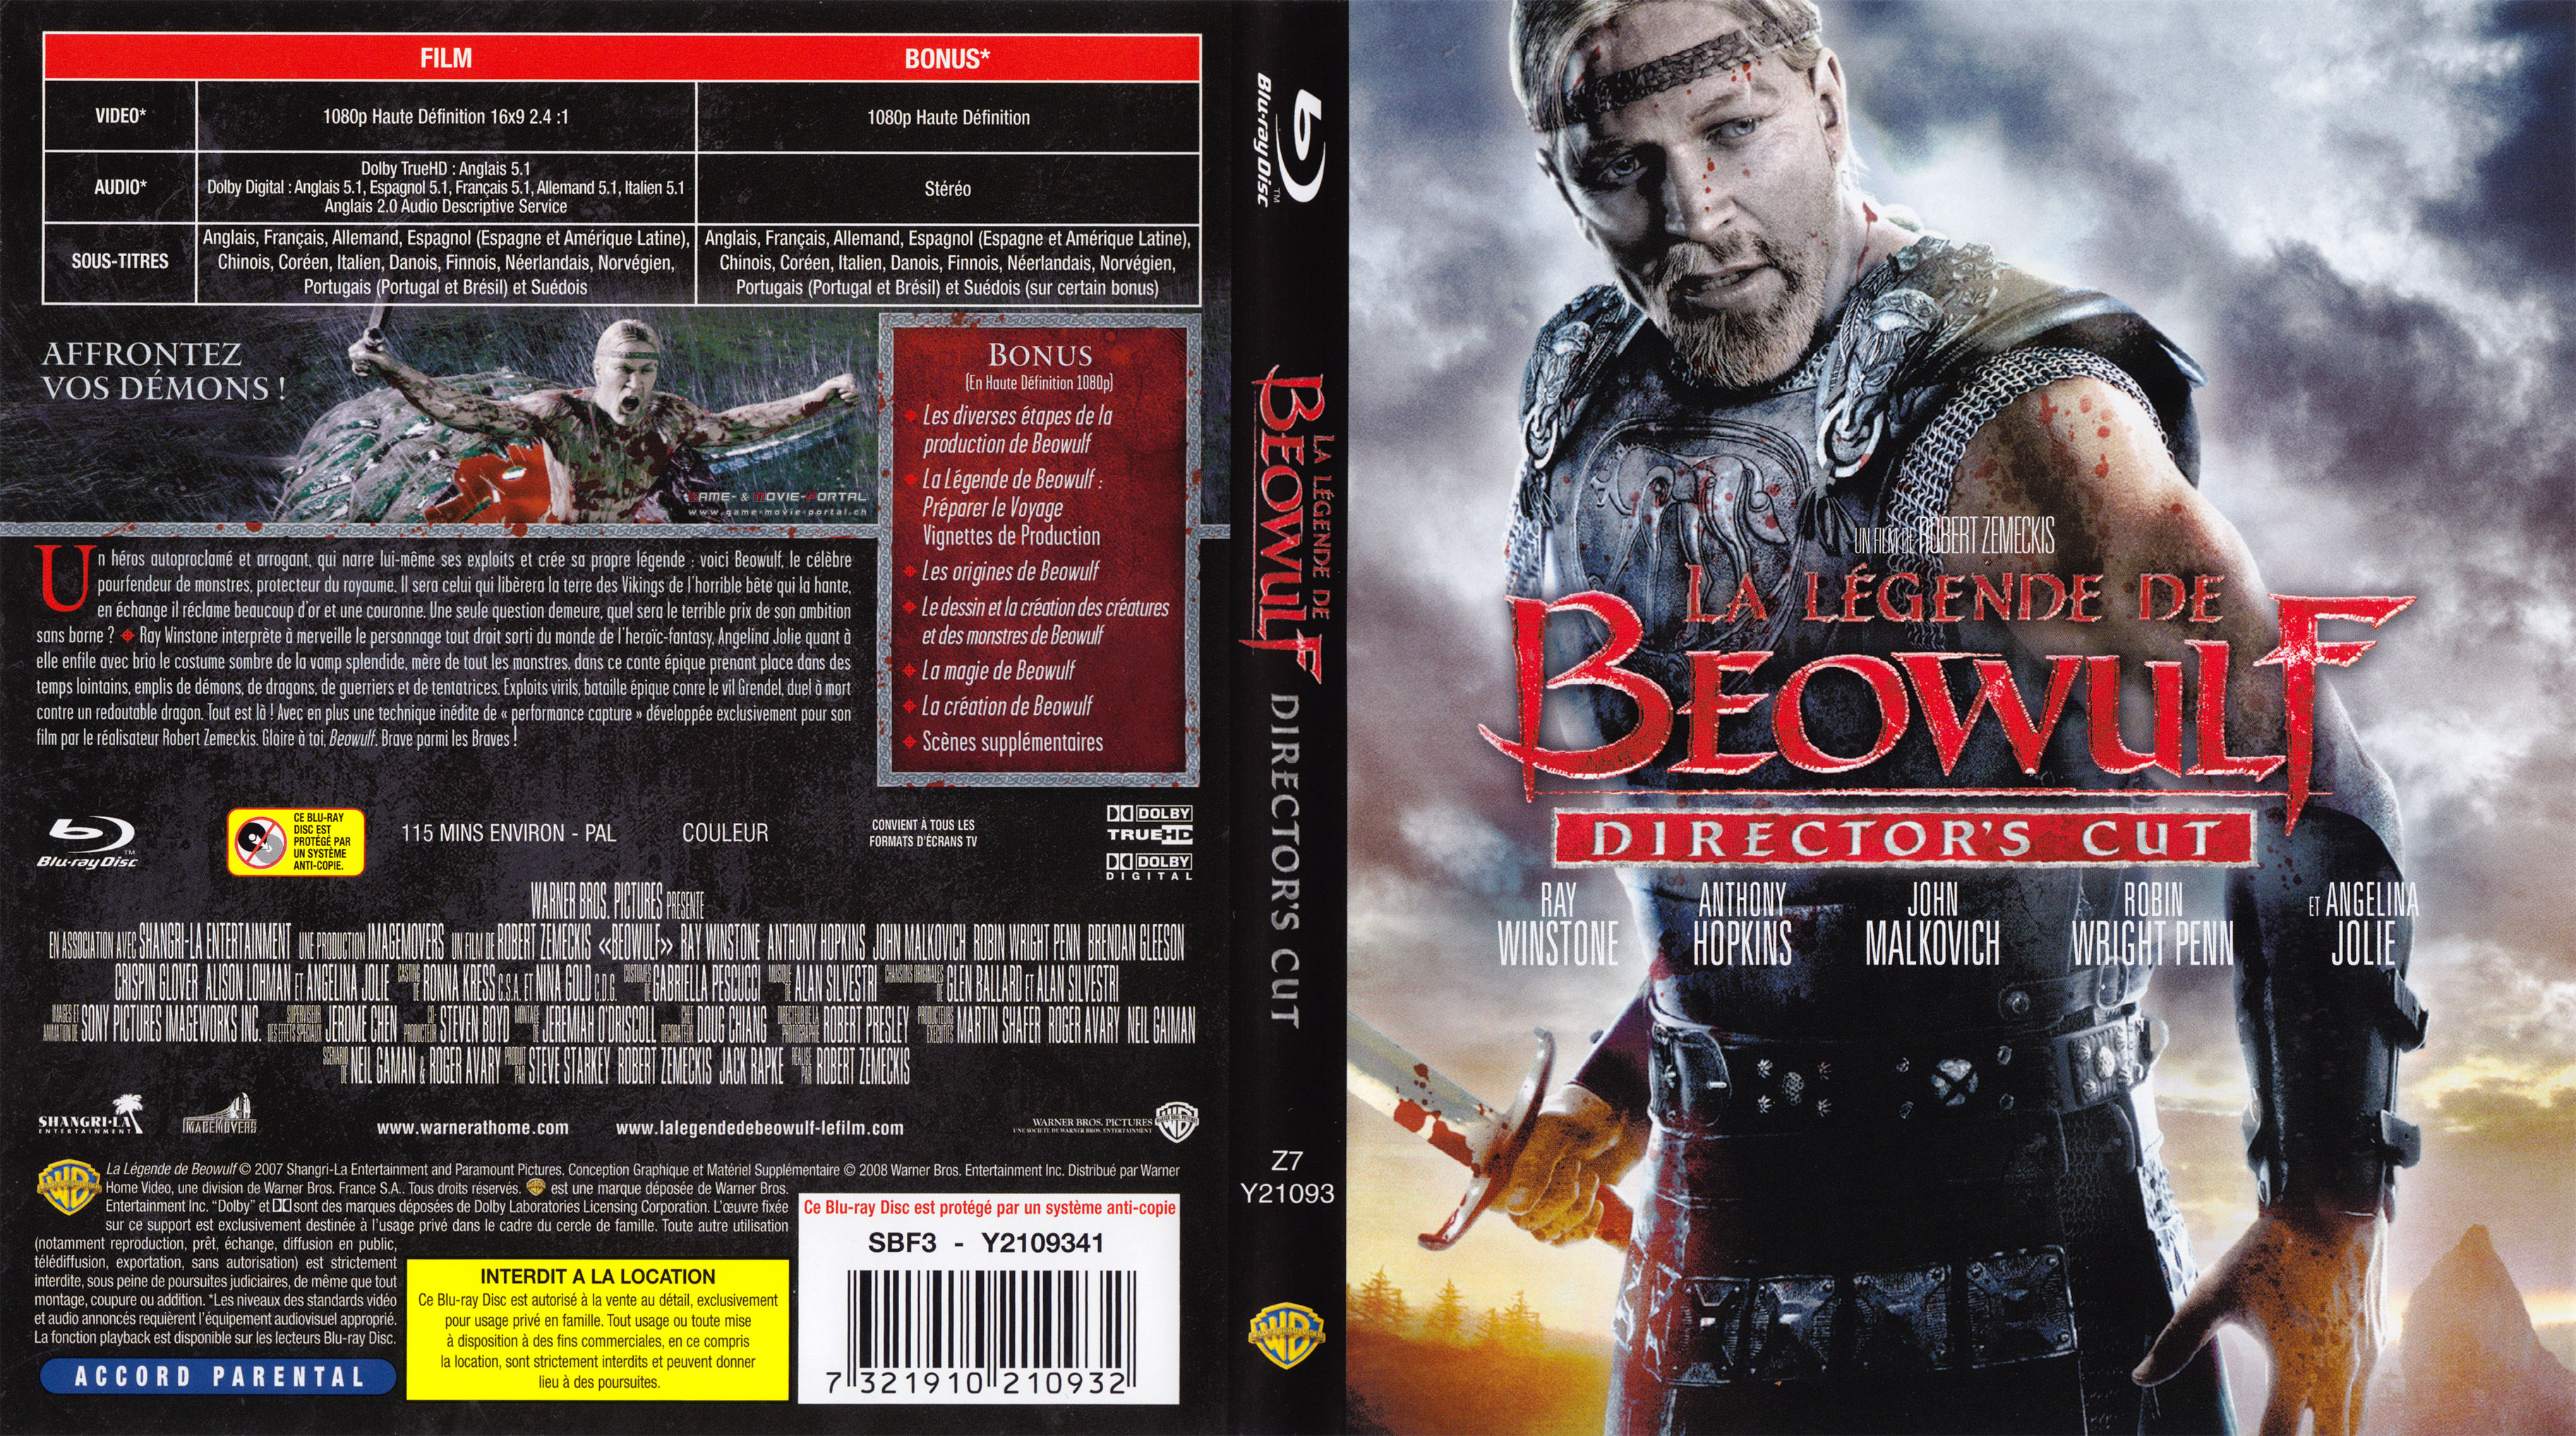 beowulf confidence